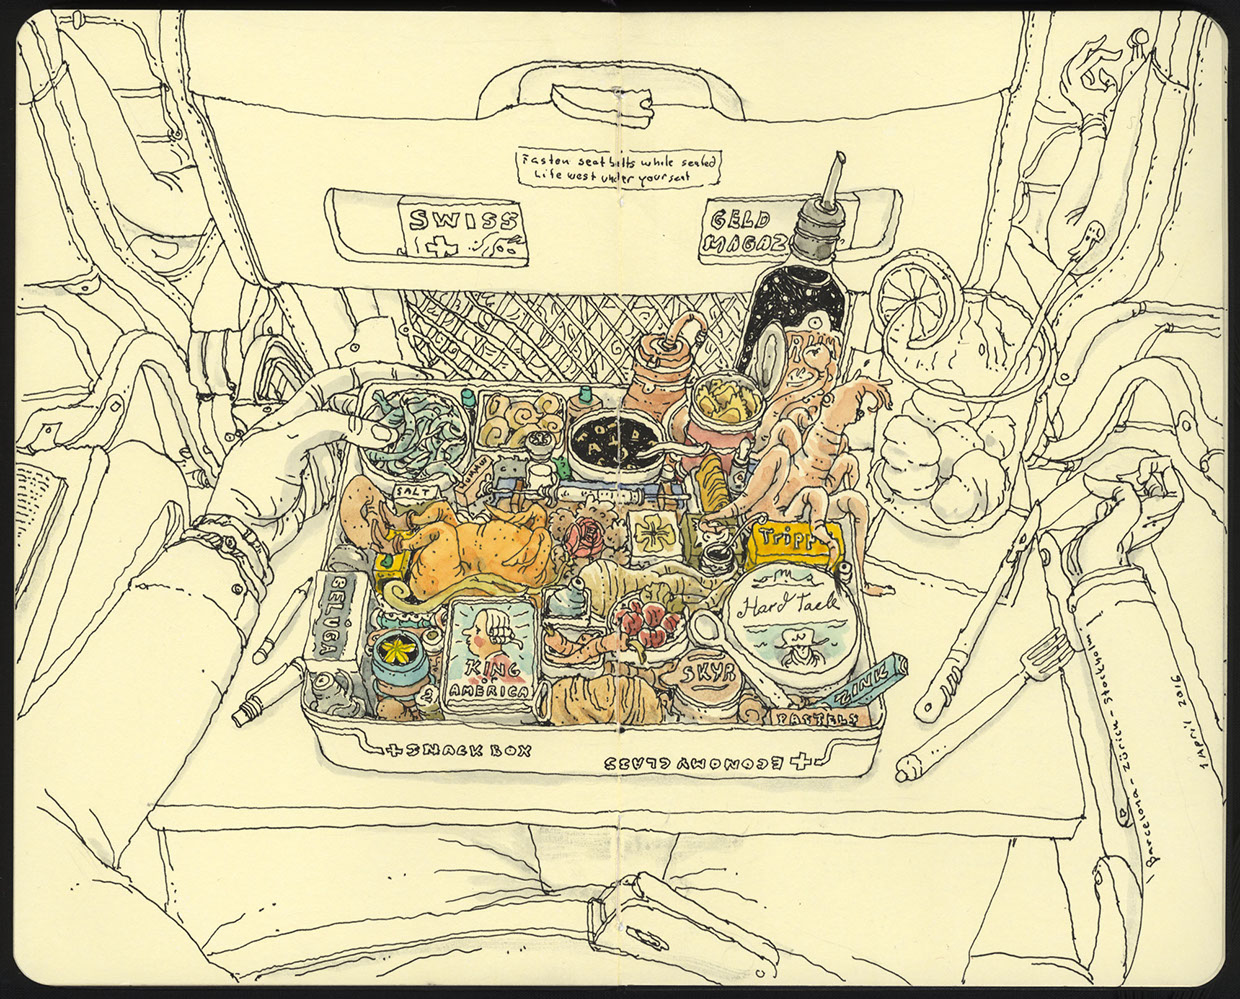 The Creative Moleskine Sketchbook of Mattias Adolfsson (23 pics)